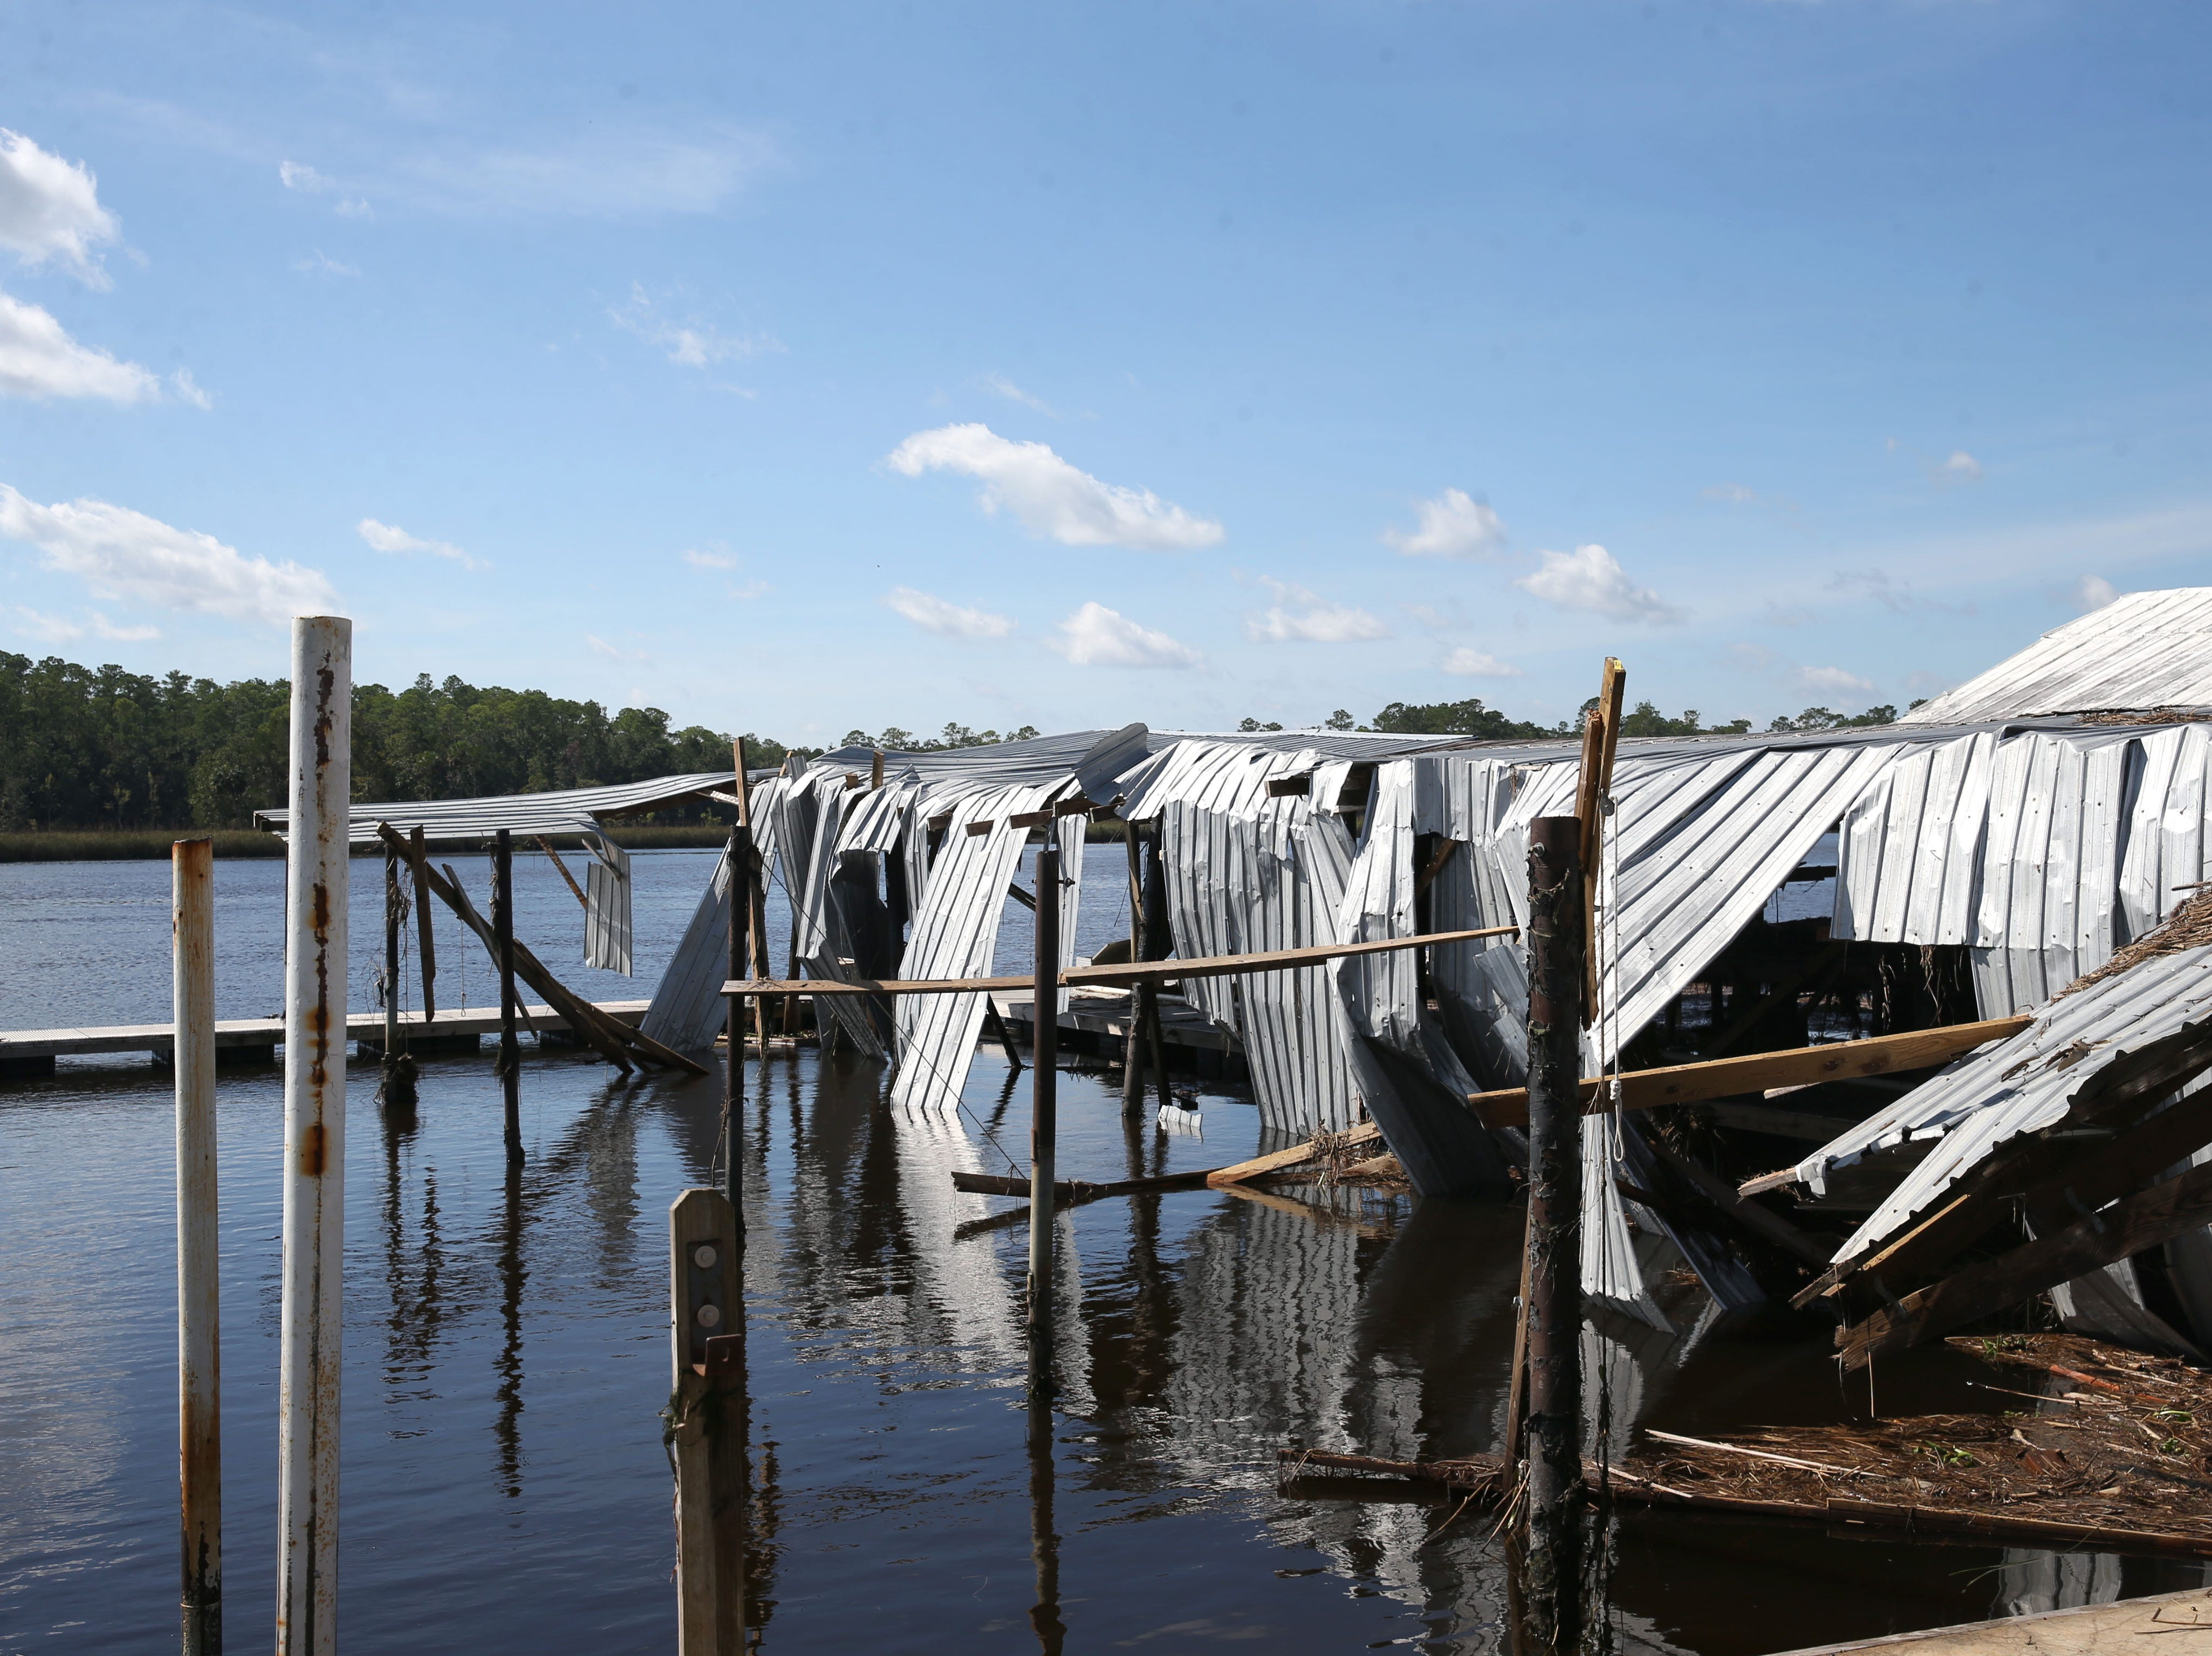 The Shell Point Fish Club in St. Marks, Fla. is left mangled by Hurricane Michael on Thursday, Oct. 11, 2018.